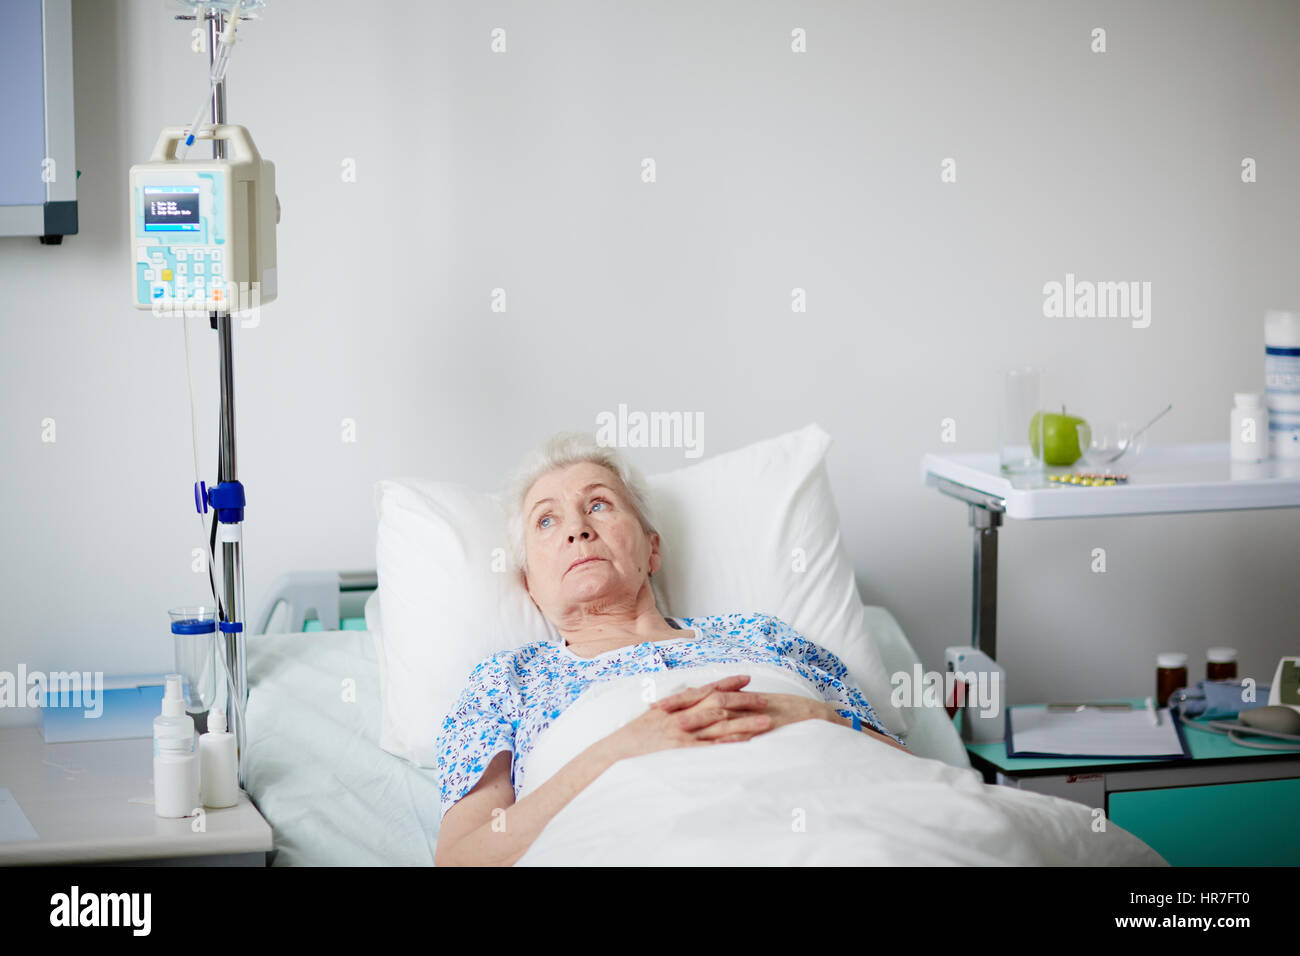 Sick Elderly Woman Resting In Hospital Bed After Getting